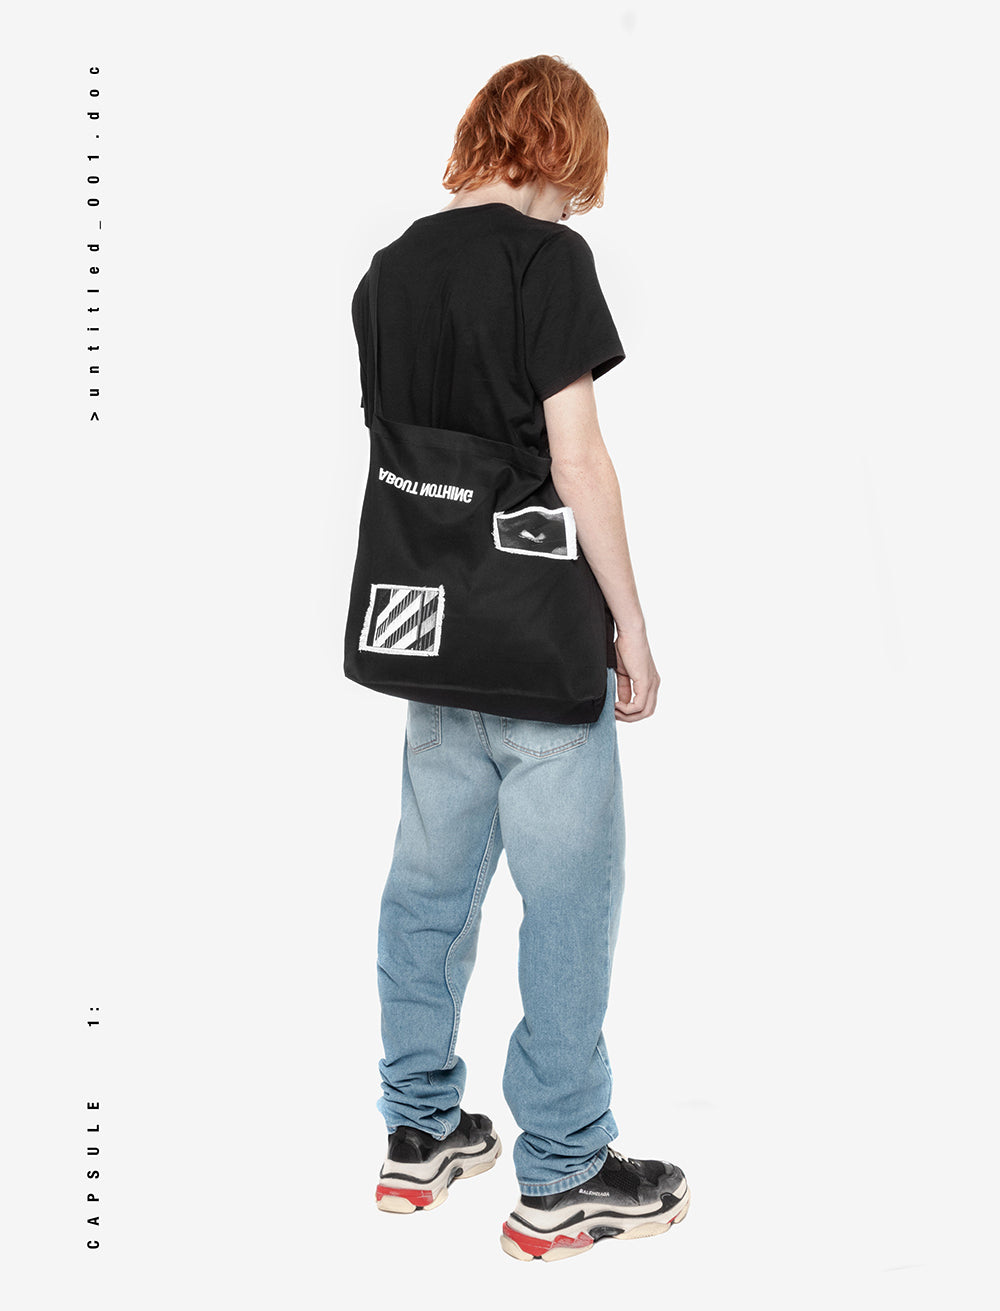 EYES AND SURROUNDINGS TOTE BAG / REVERSE LOGO